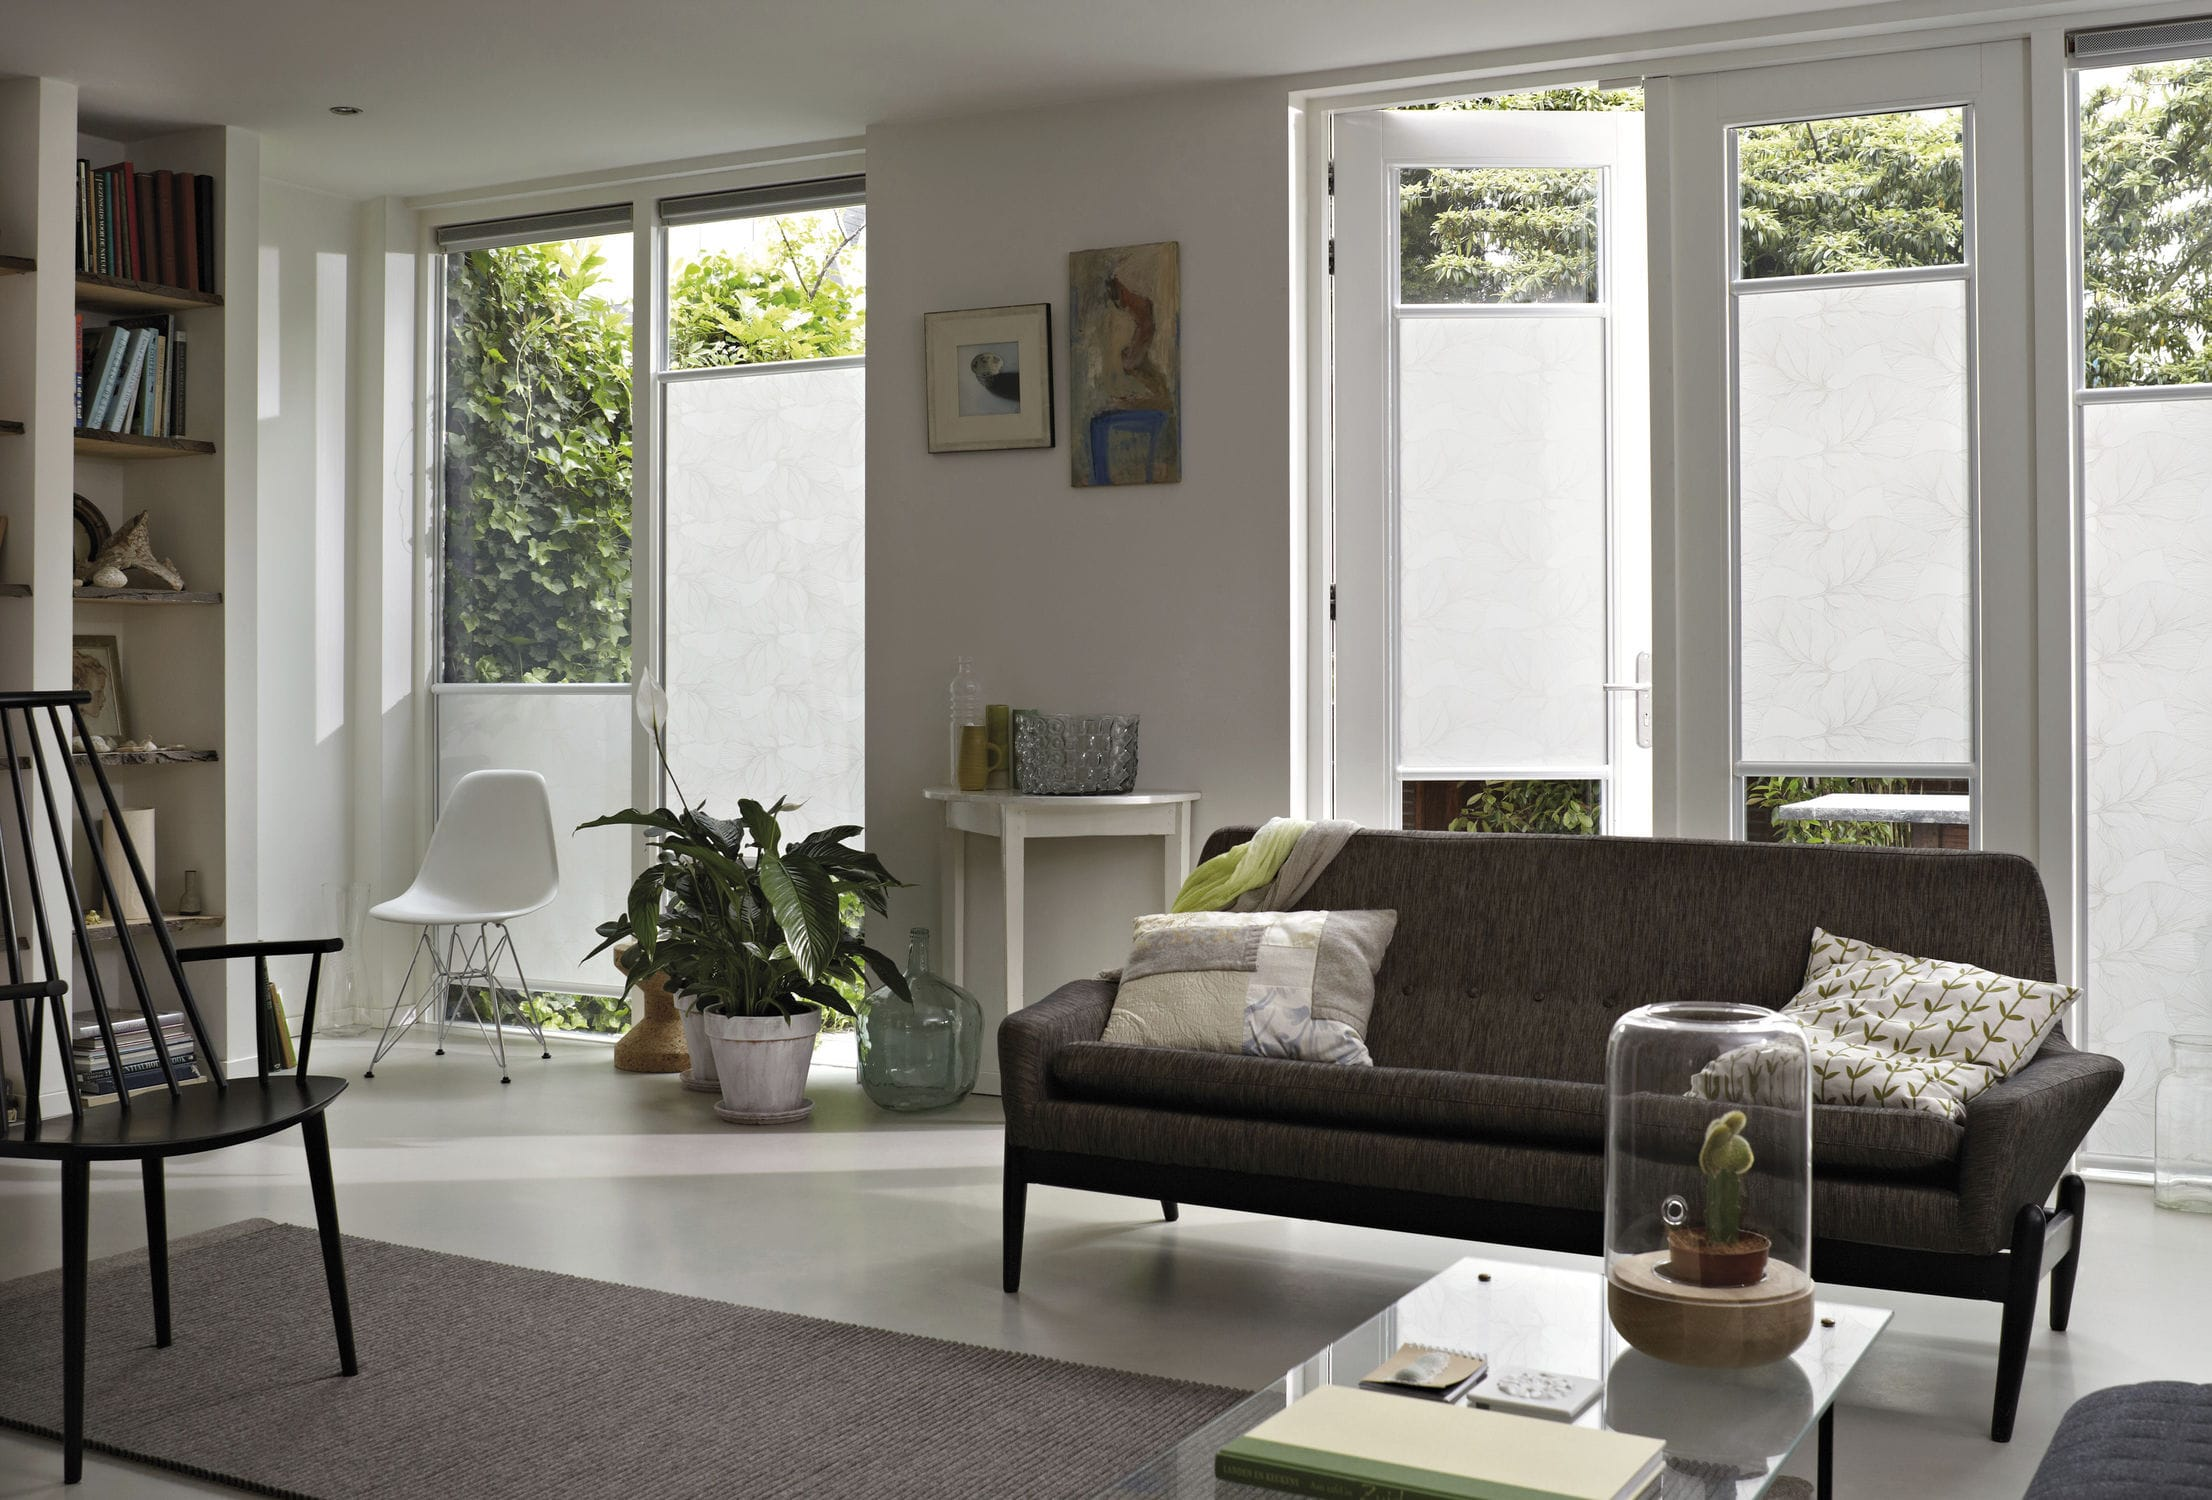 Roller blinds / fabric / window